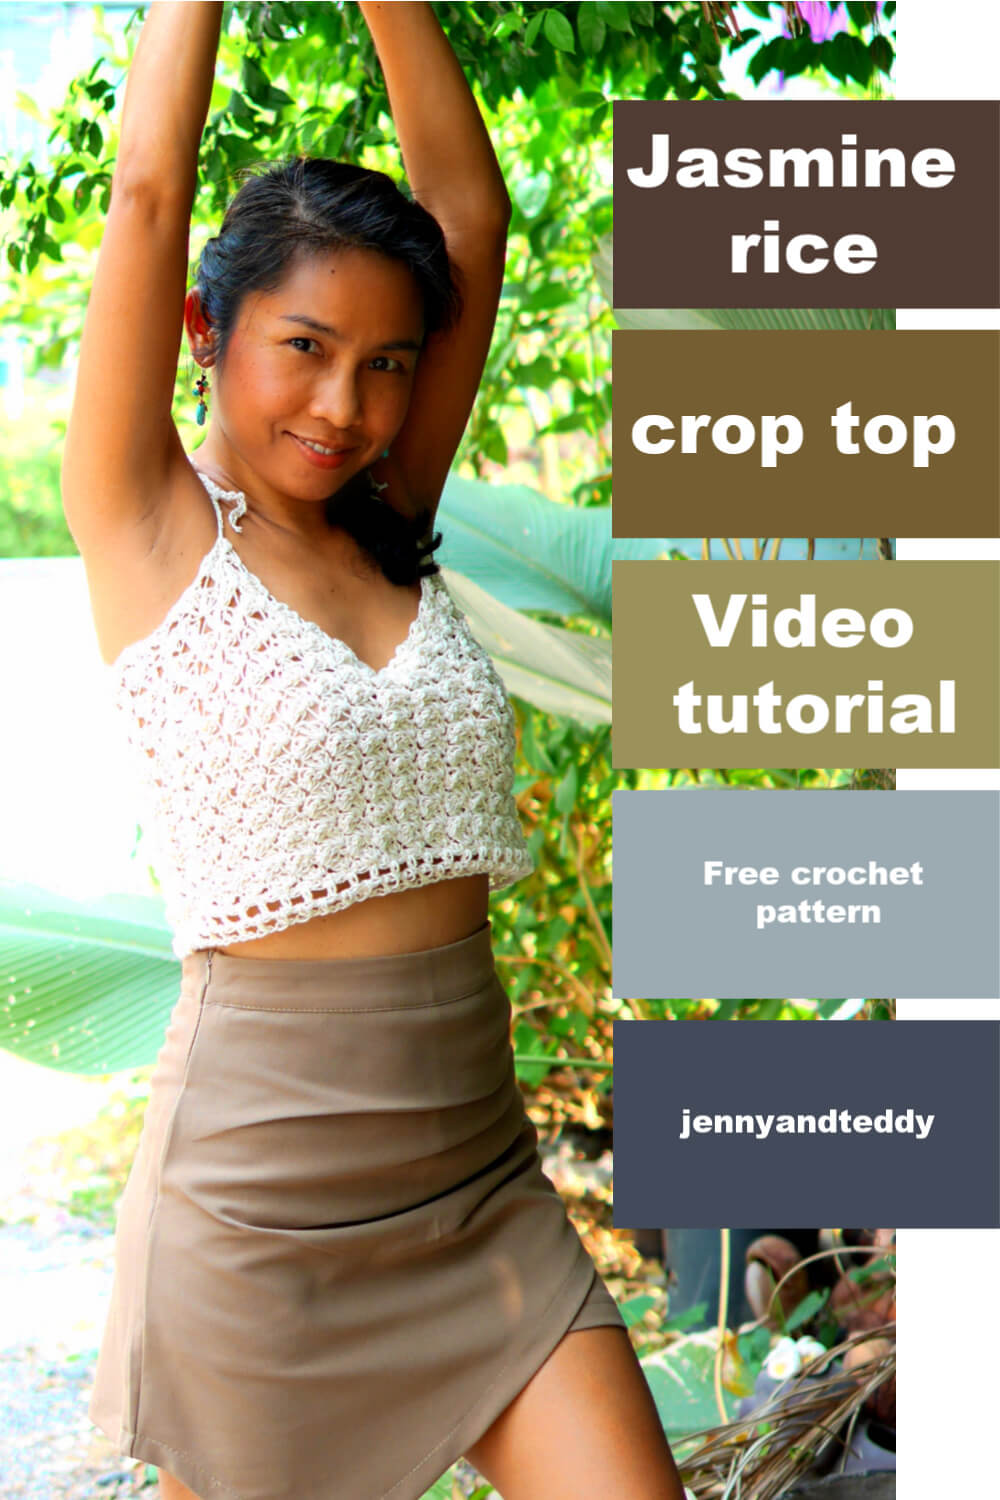 jasmine rice crochet crop top free pattern